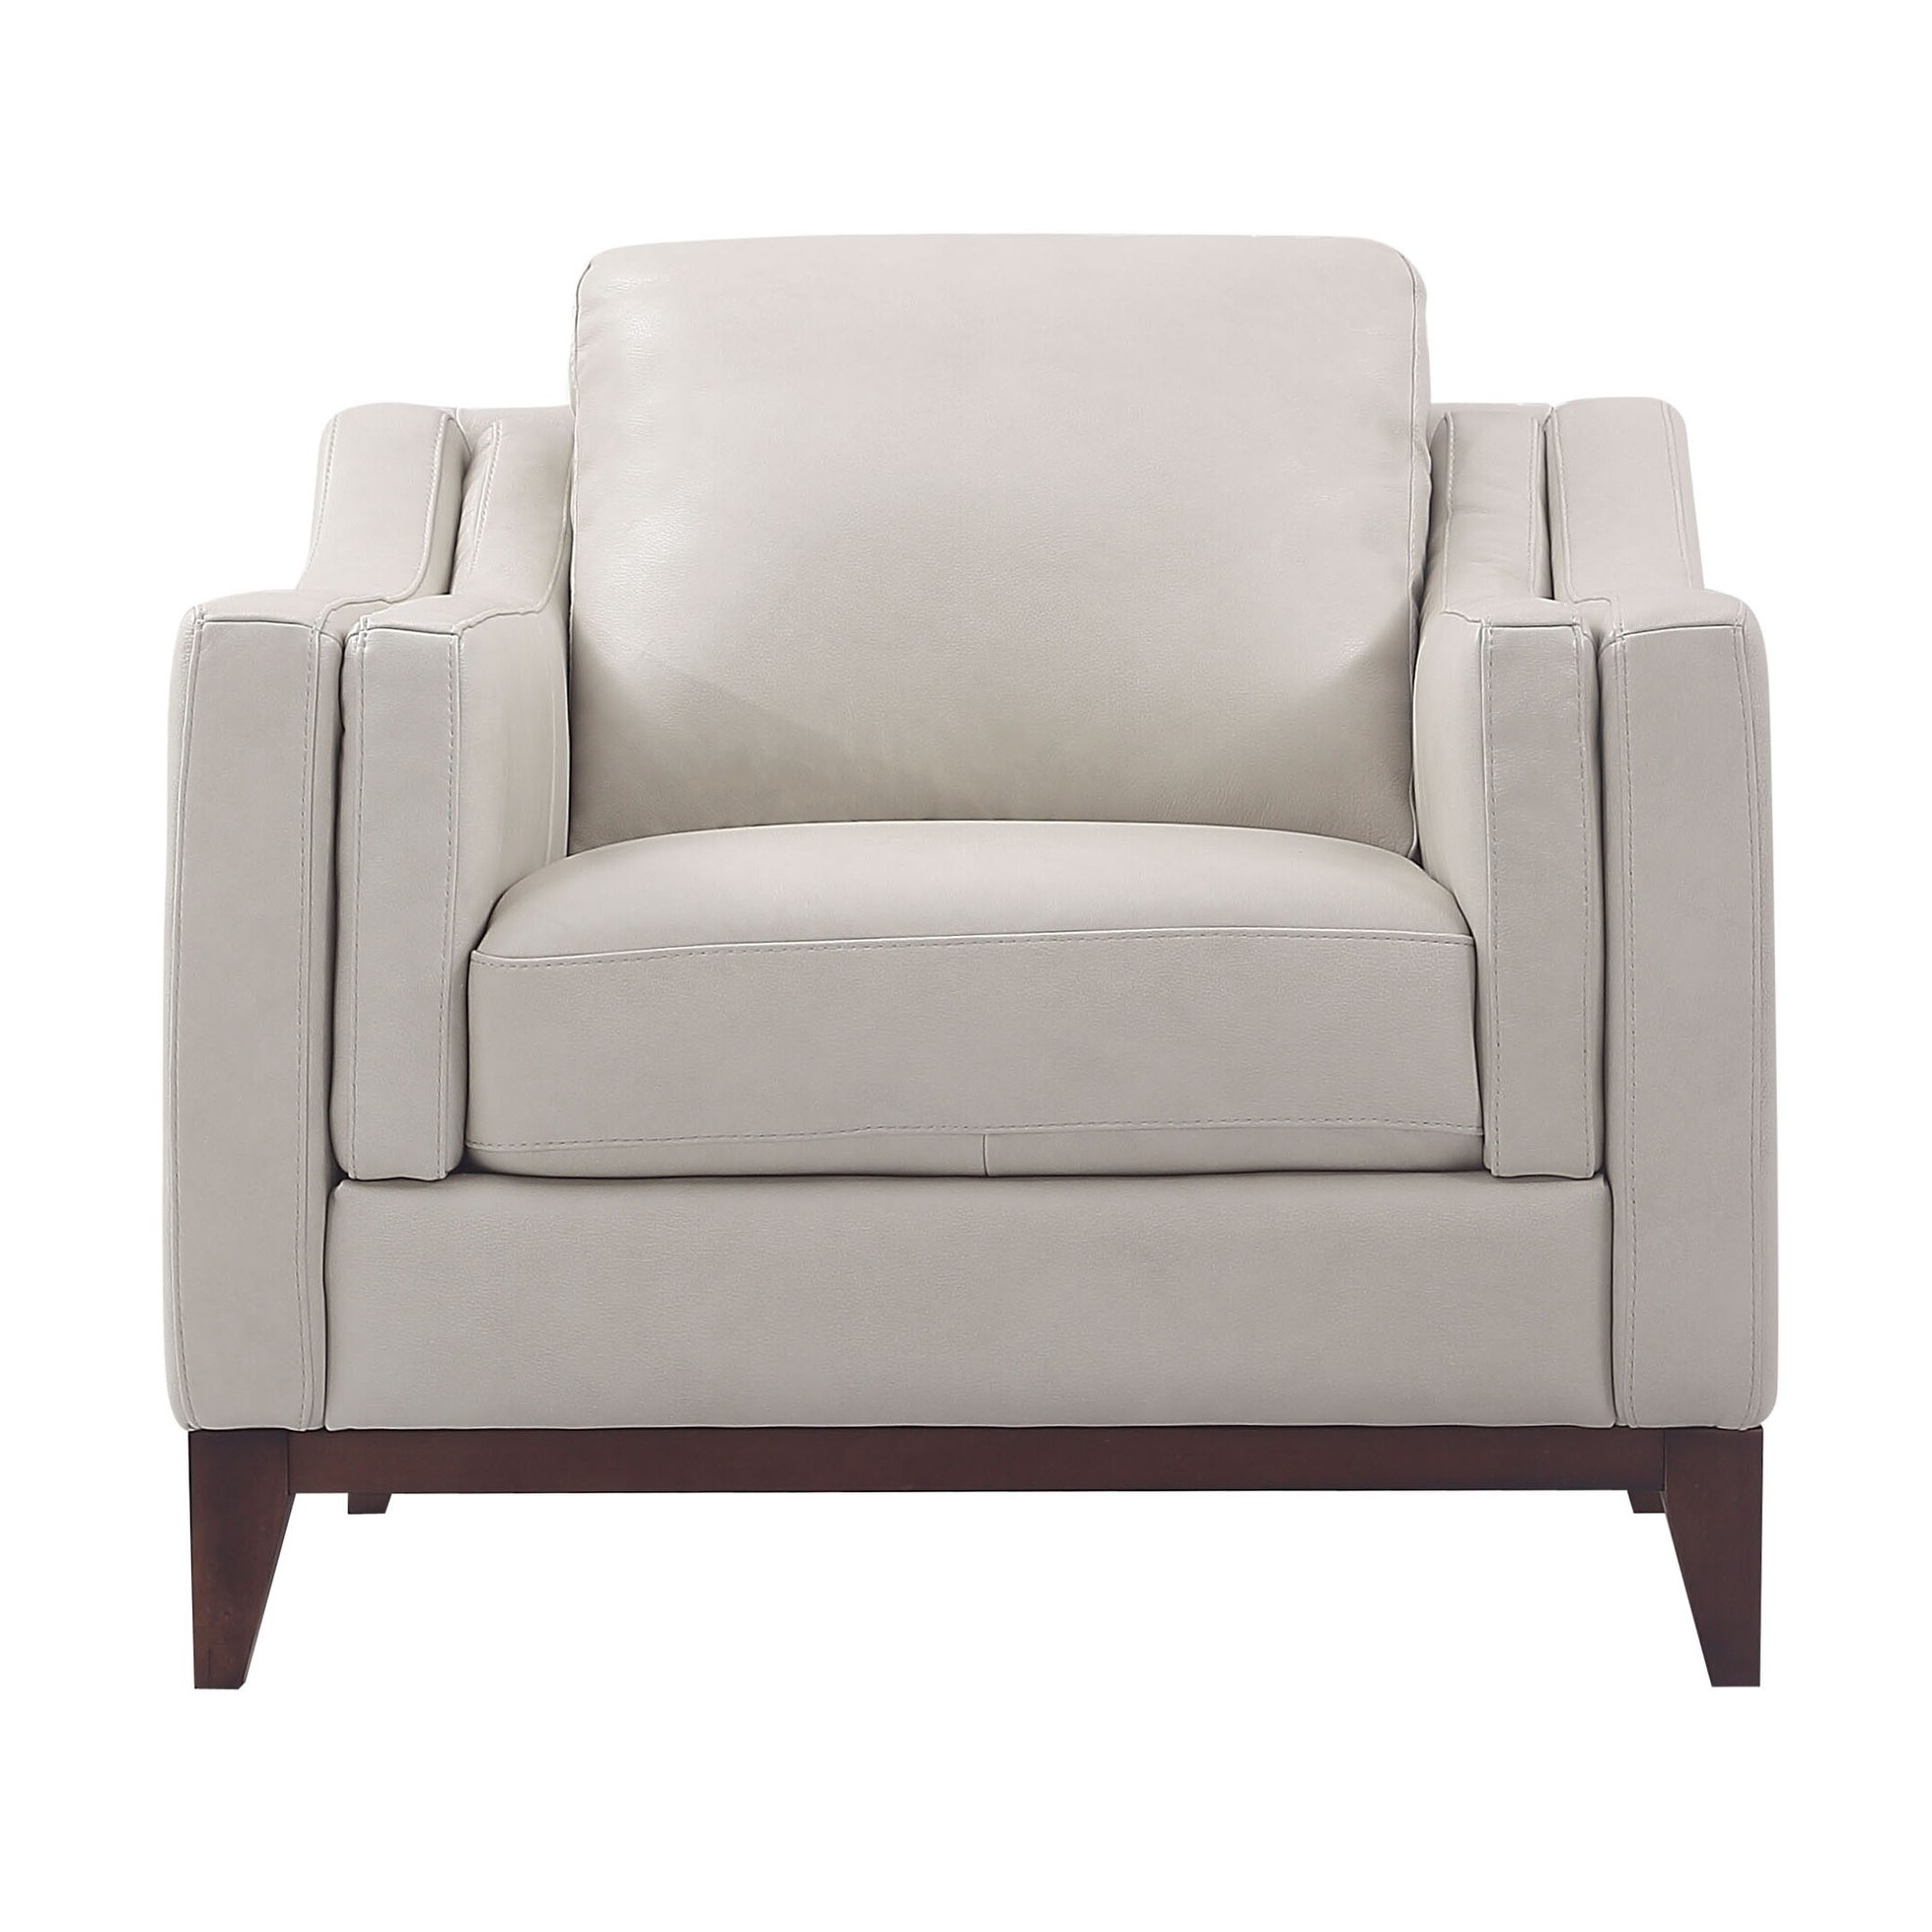 Newest Lydia Top Grain Leather Club Chair Throughout Sheldon Tufted Top Grain Leather Club Chairs (View 7 of 20)